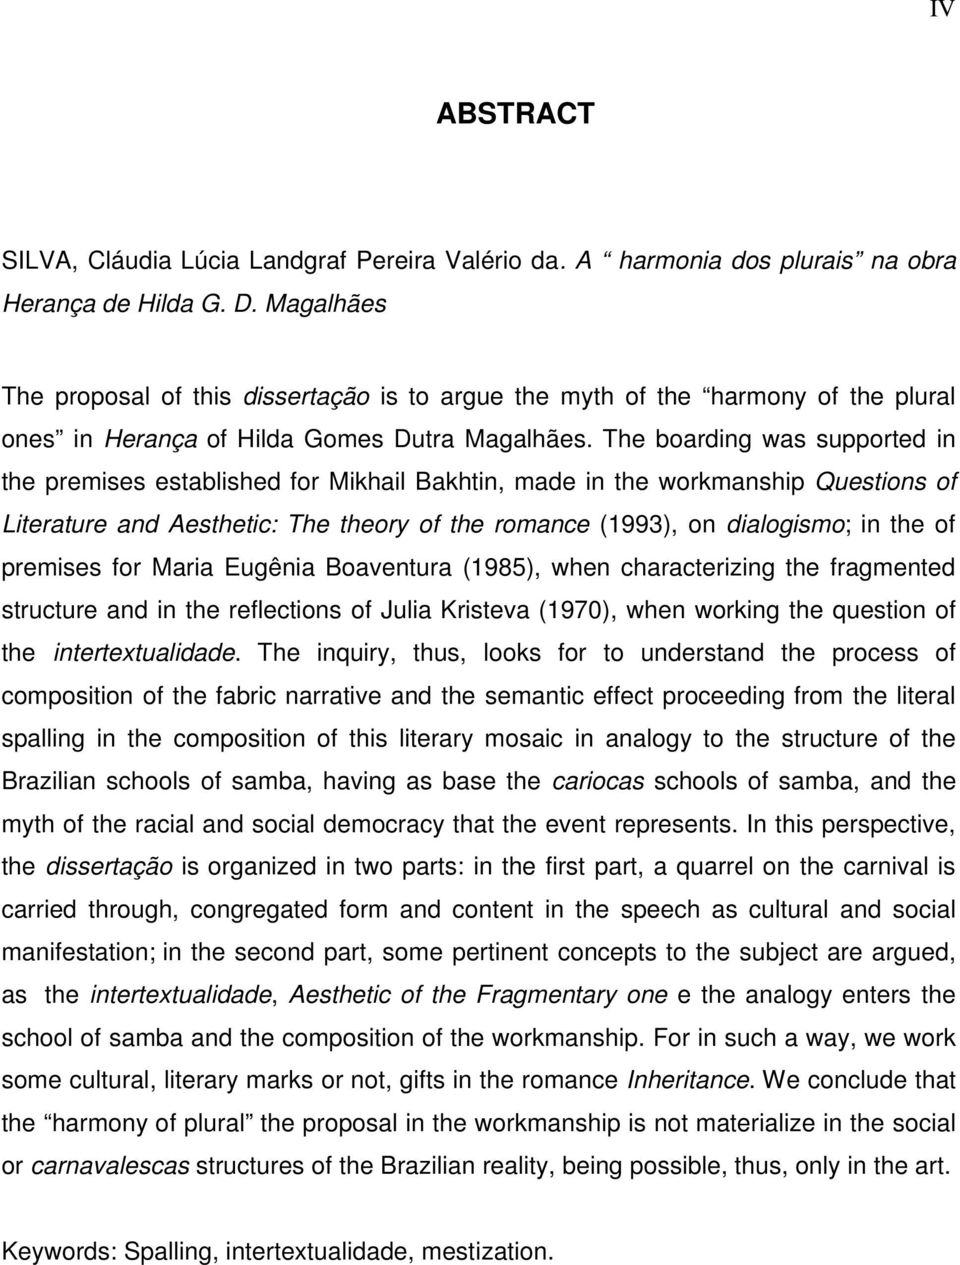 The boarding was supported in the premises established for Mikhail Bakhtin, made in the workmanship Questions of Literature and Aesthetic: The theory of the romance (1993), on dialogismo; in the of